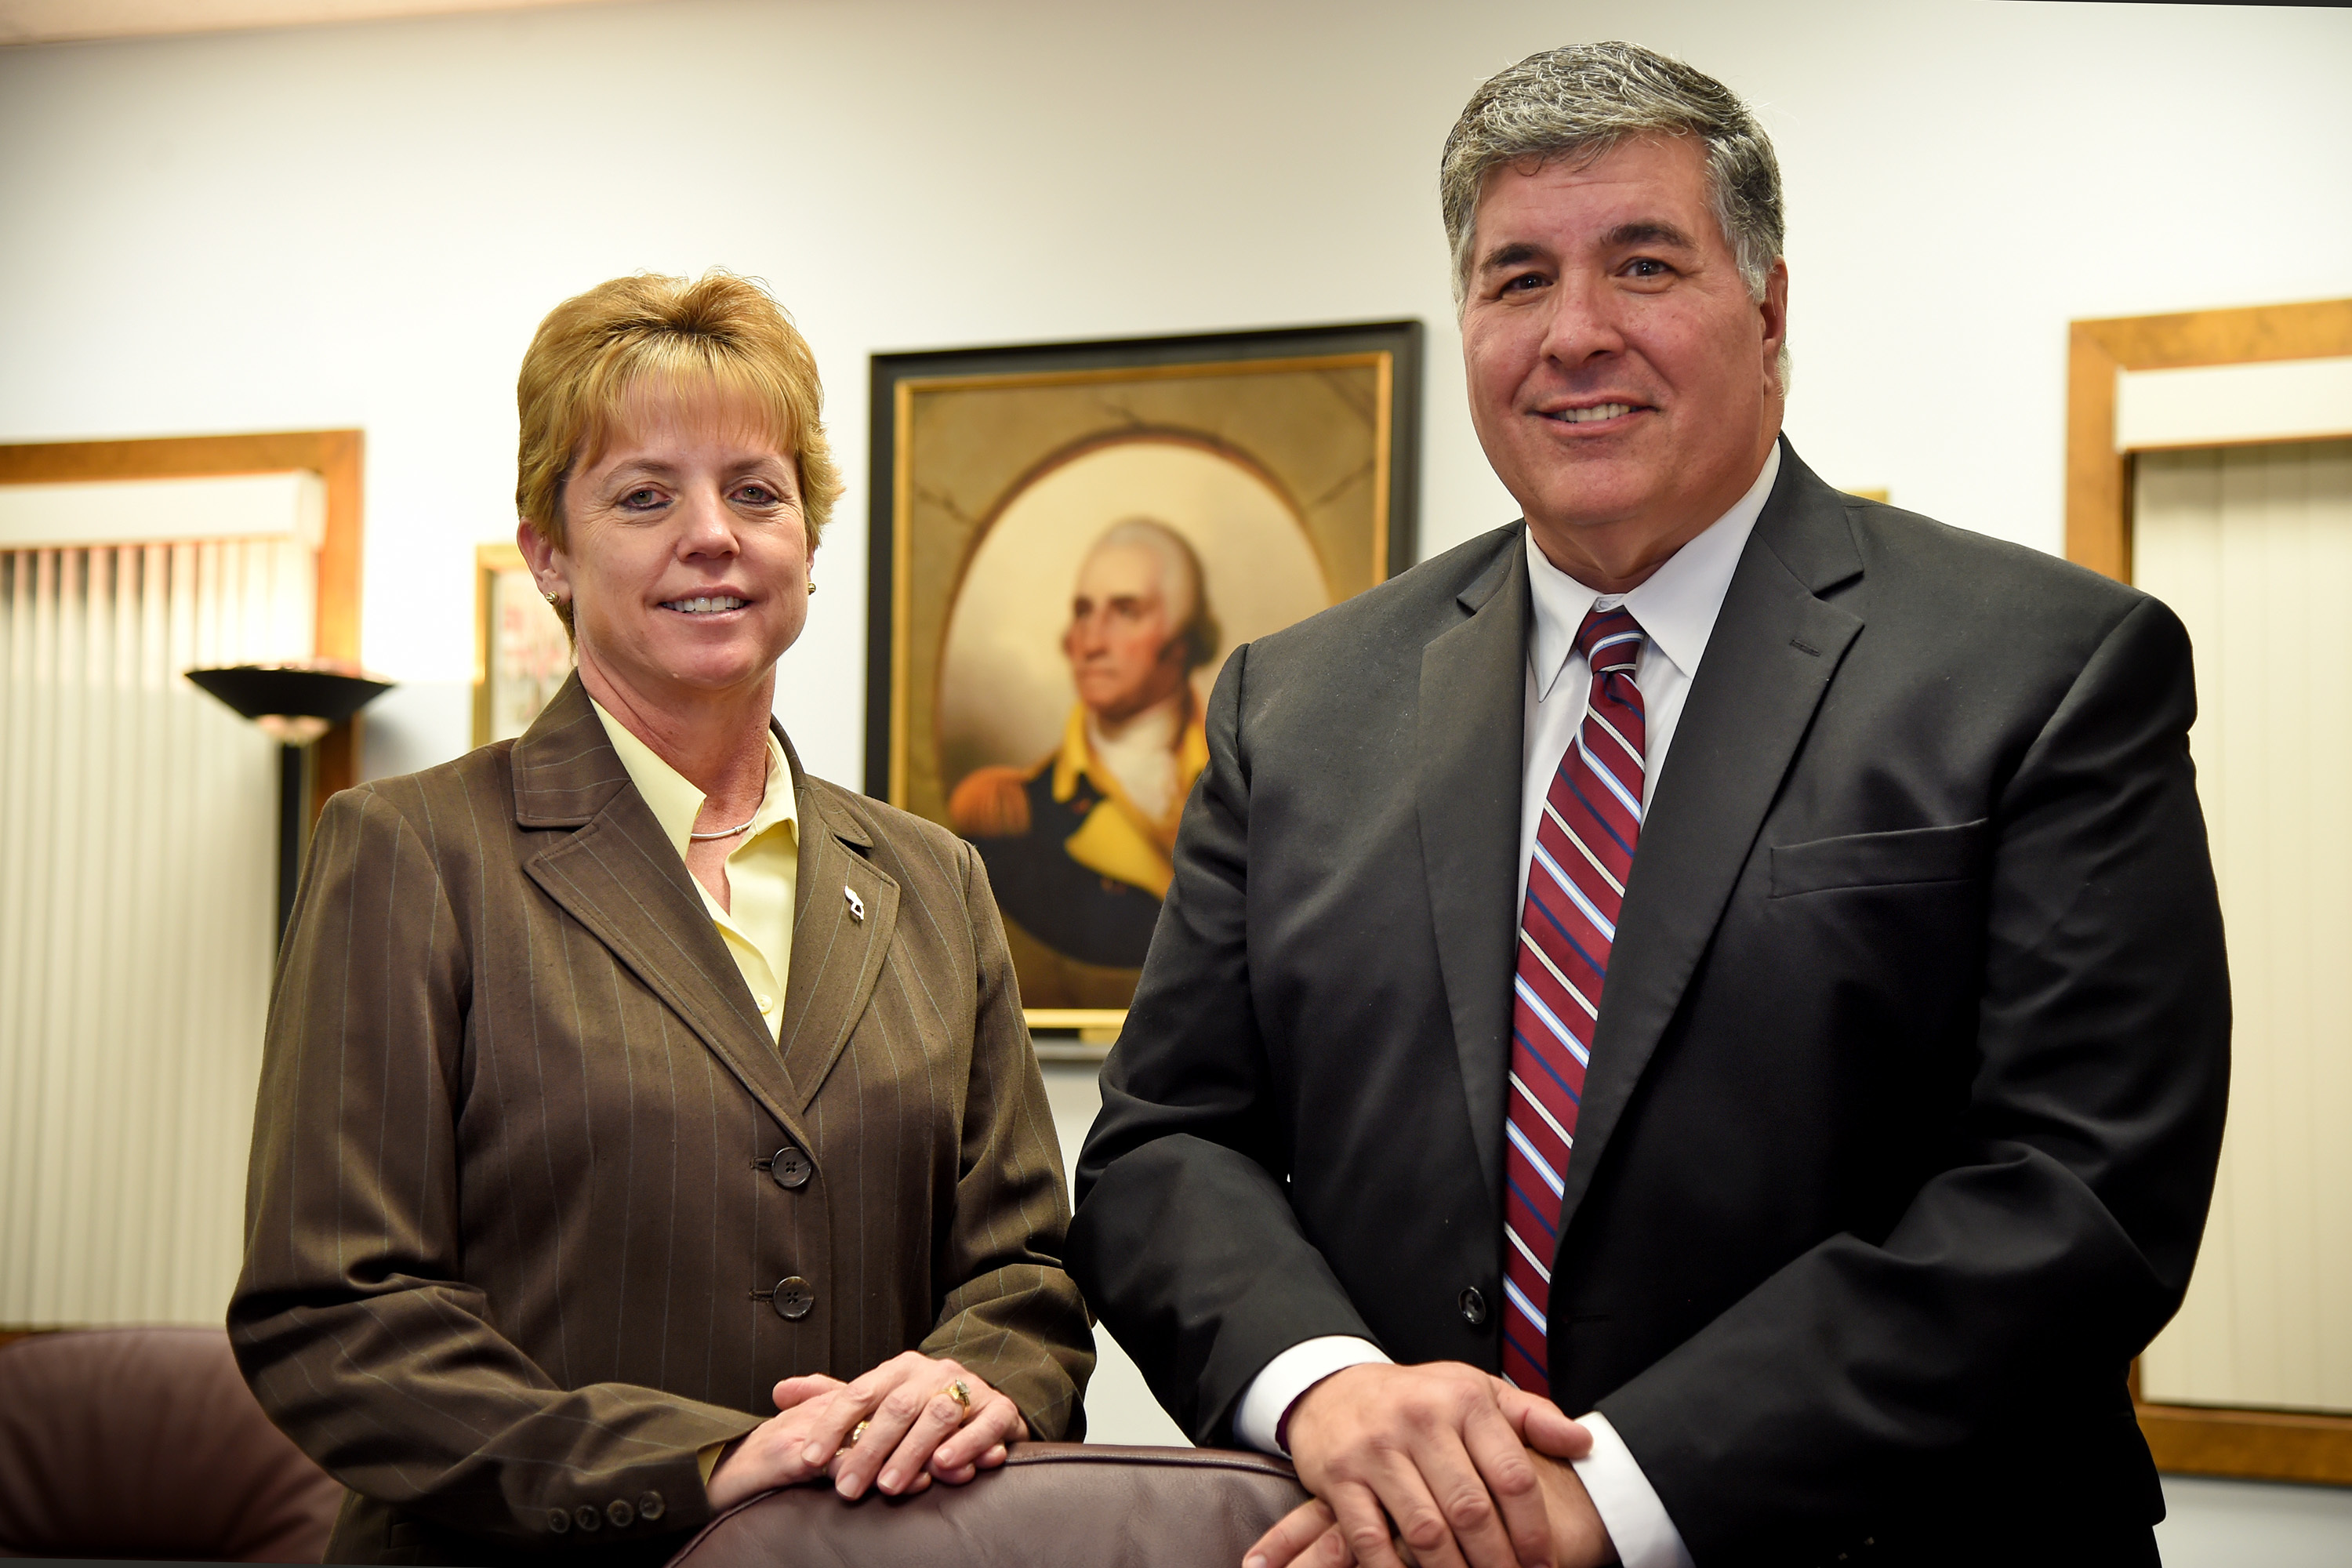 Washington Township superintendent Joseph Bollendorf (right) and Ginny Murphy (left) Washington Township Board of Education president at the Board of Education offices in January 2017. The Gloucester County district is among 172 across New Jersey that lost money in the new state budget.